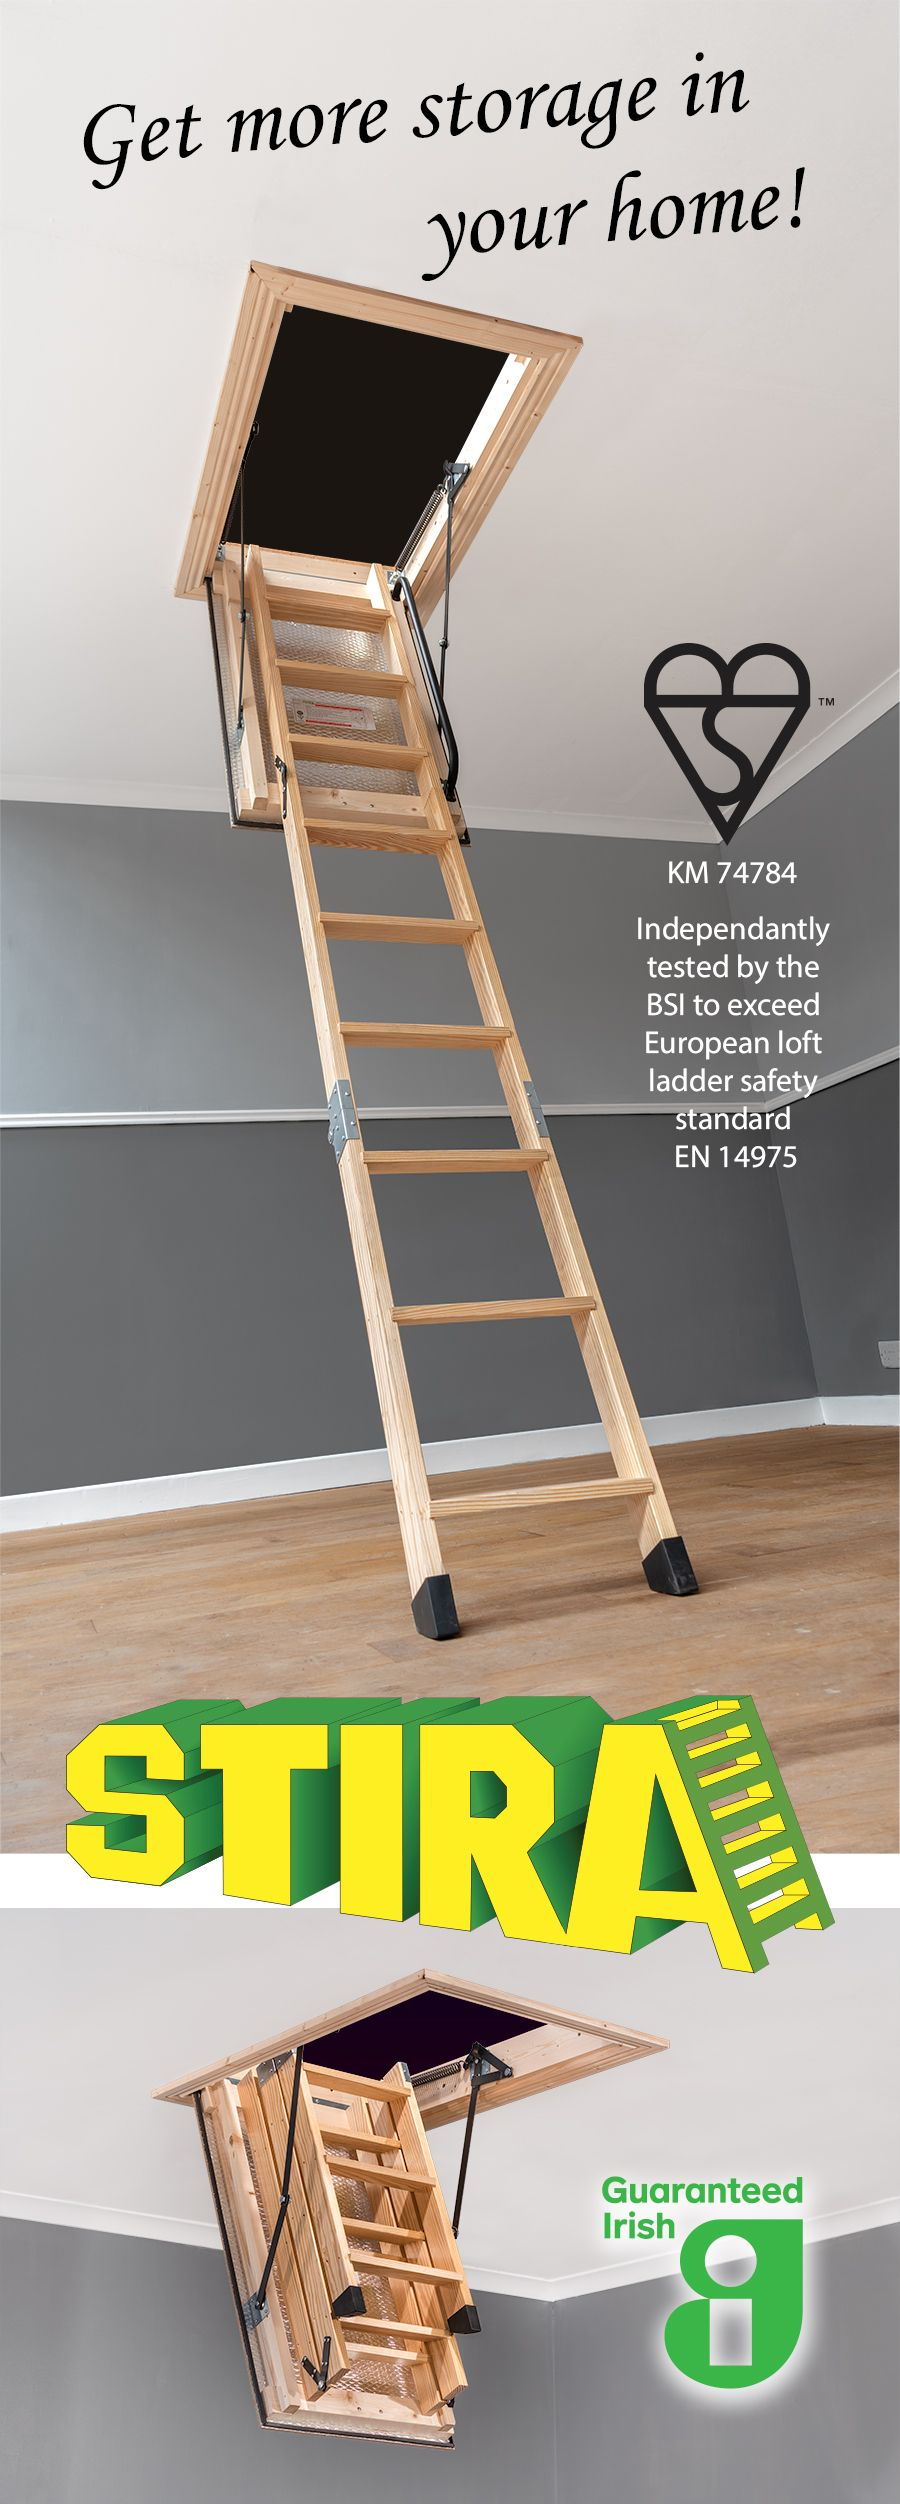 The Stira Folding Attic Stairs Is A Loft Ladder Built To Last Big Framing Unique Hinges And A Full Fitting Service Make It Different From Other Loft Ladders